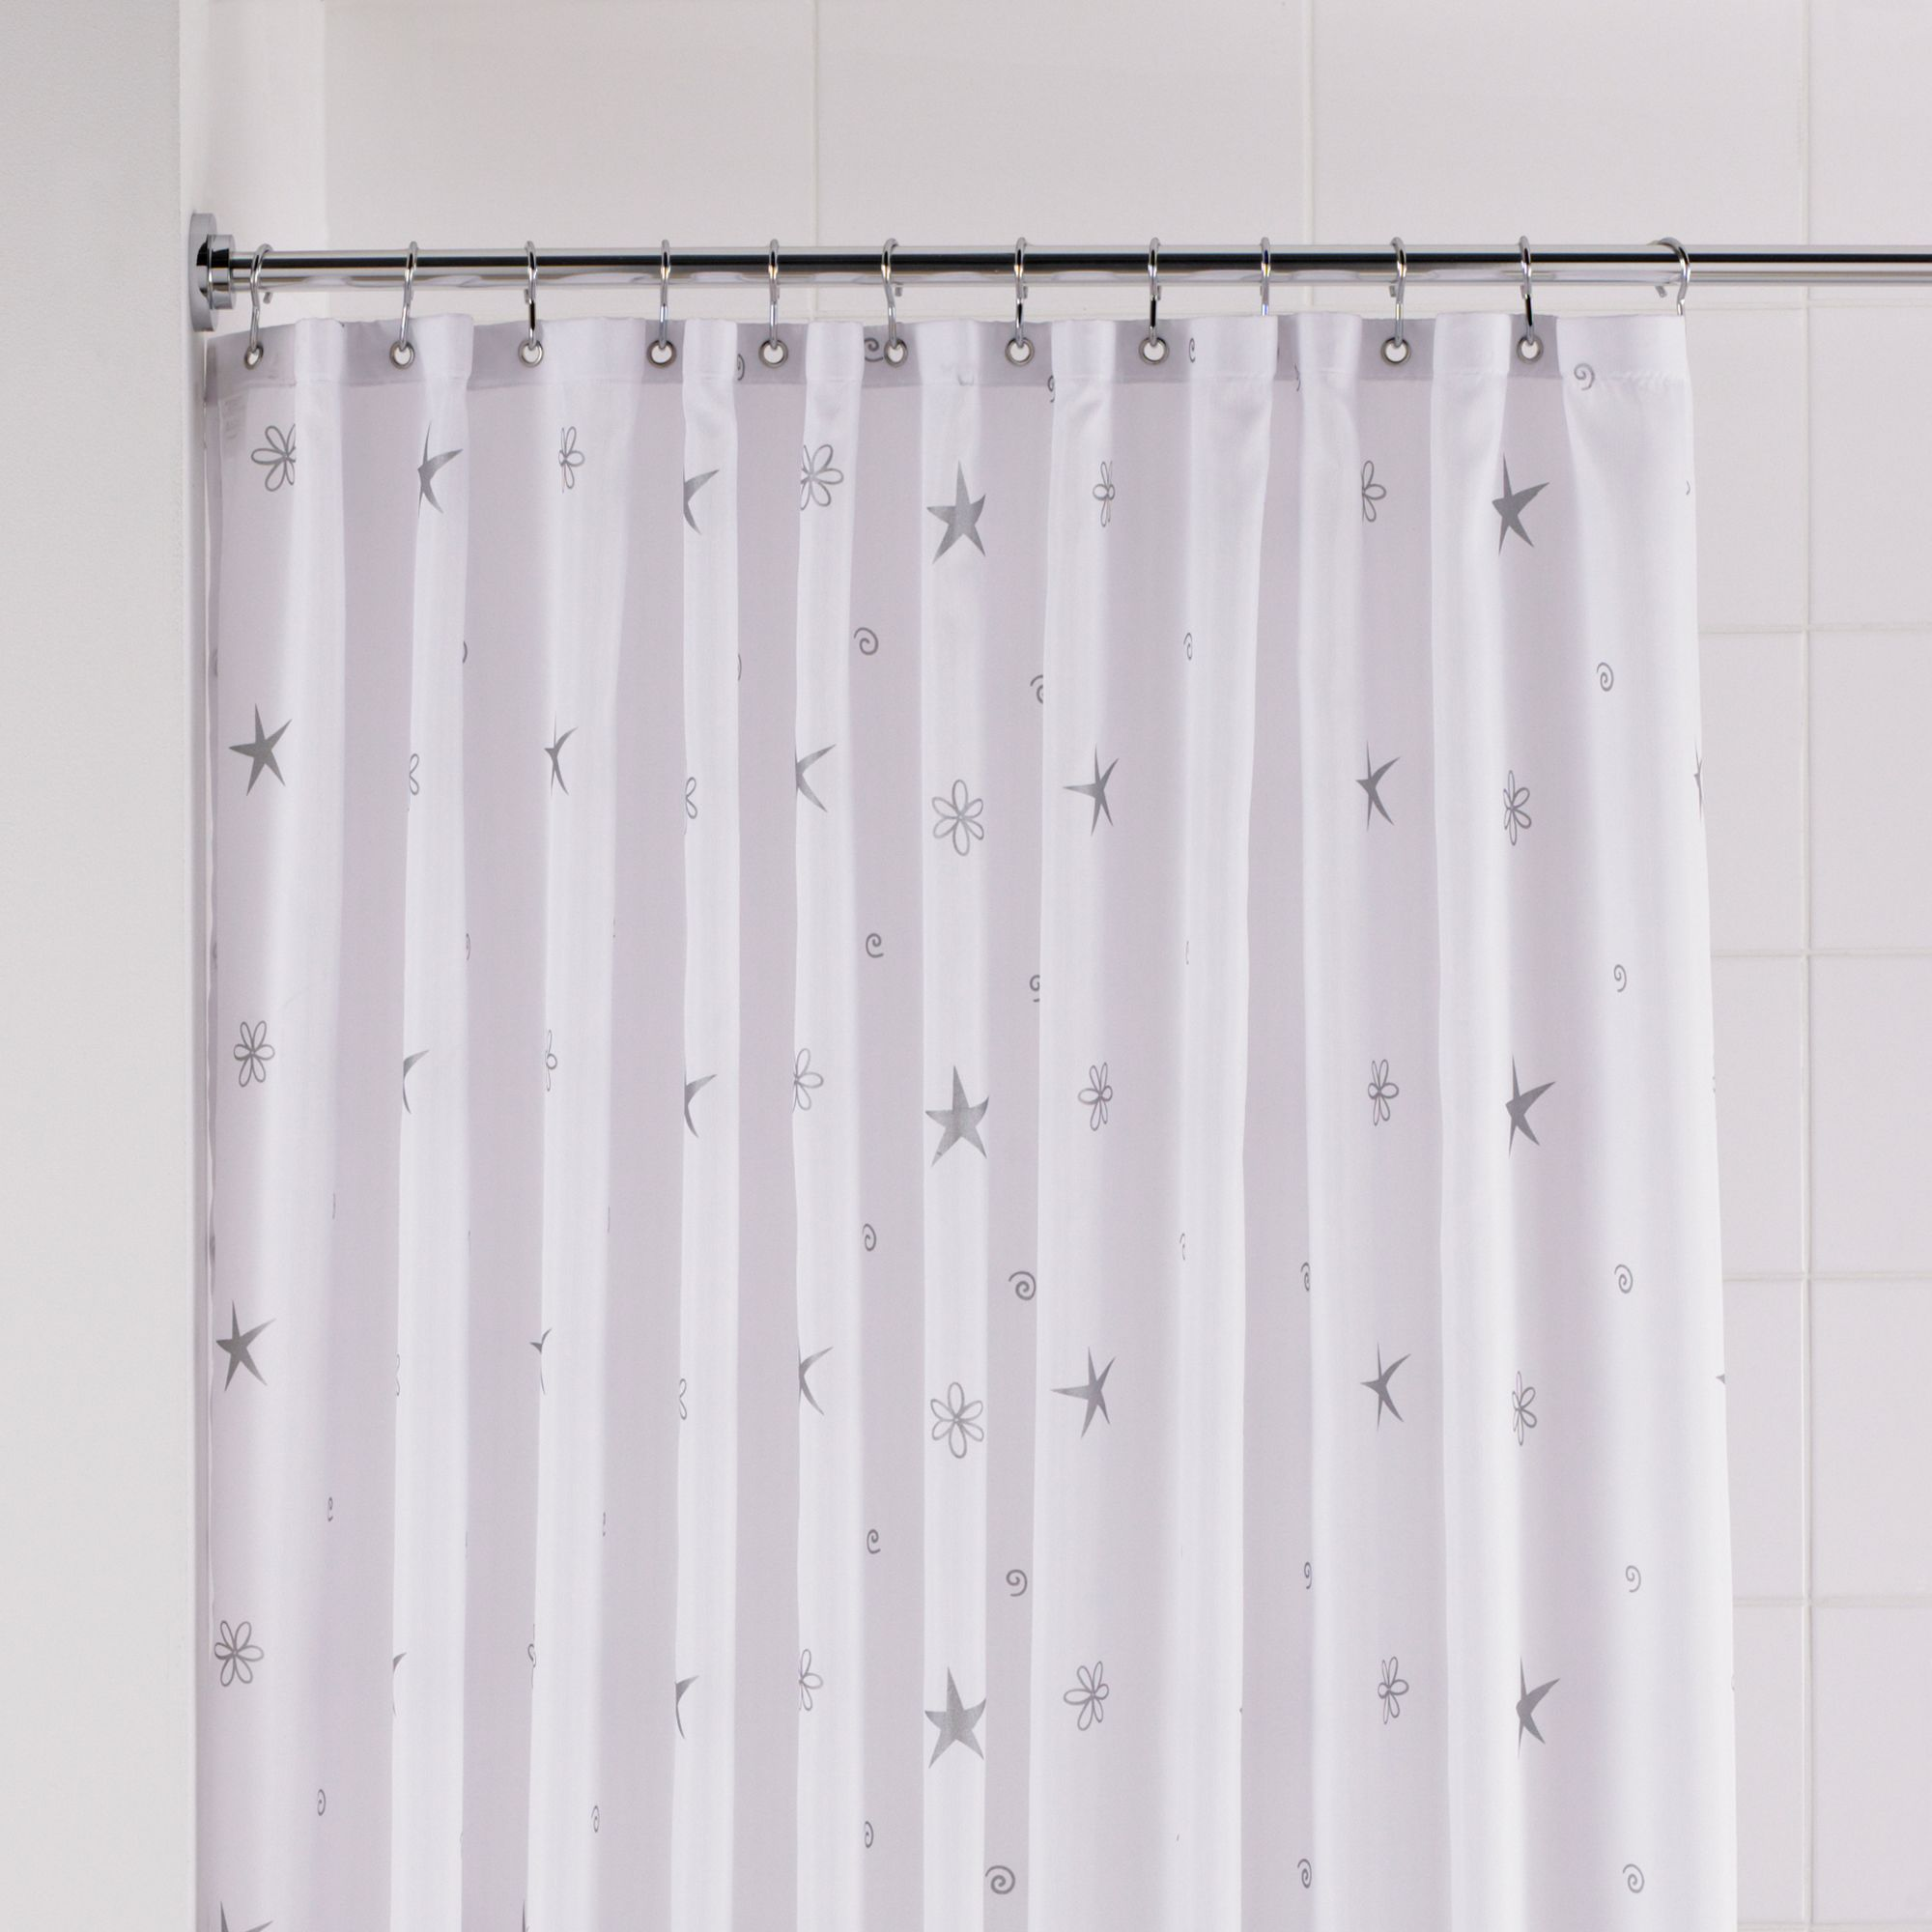 white and silver shower curtain. BampQ Silver Amp White Twinkle Stars Shower Curtain L1800 Mm 37  Track Systems For Bay